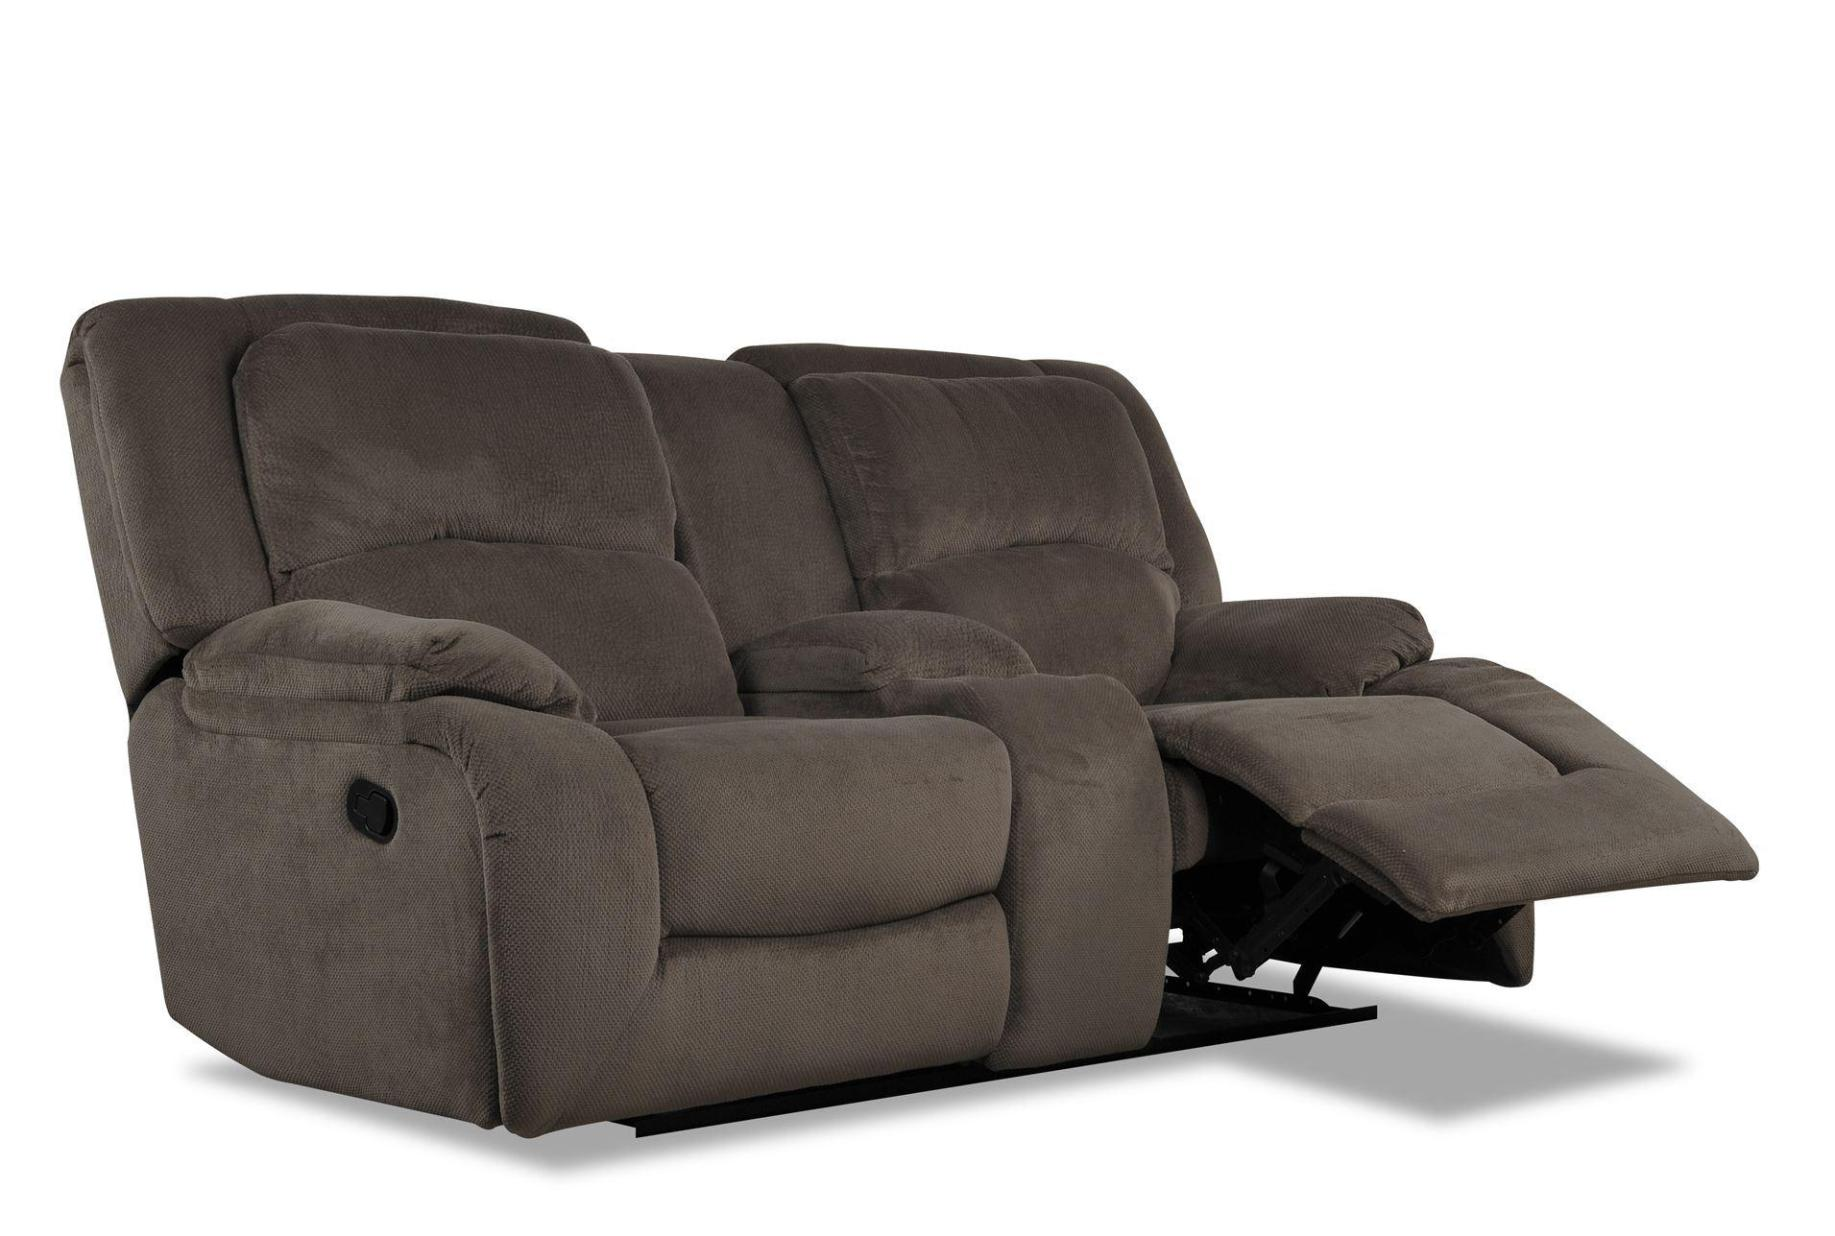 Image of: Small Loveseat Recliner